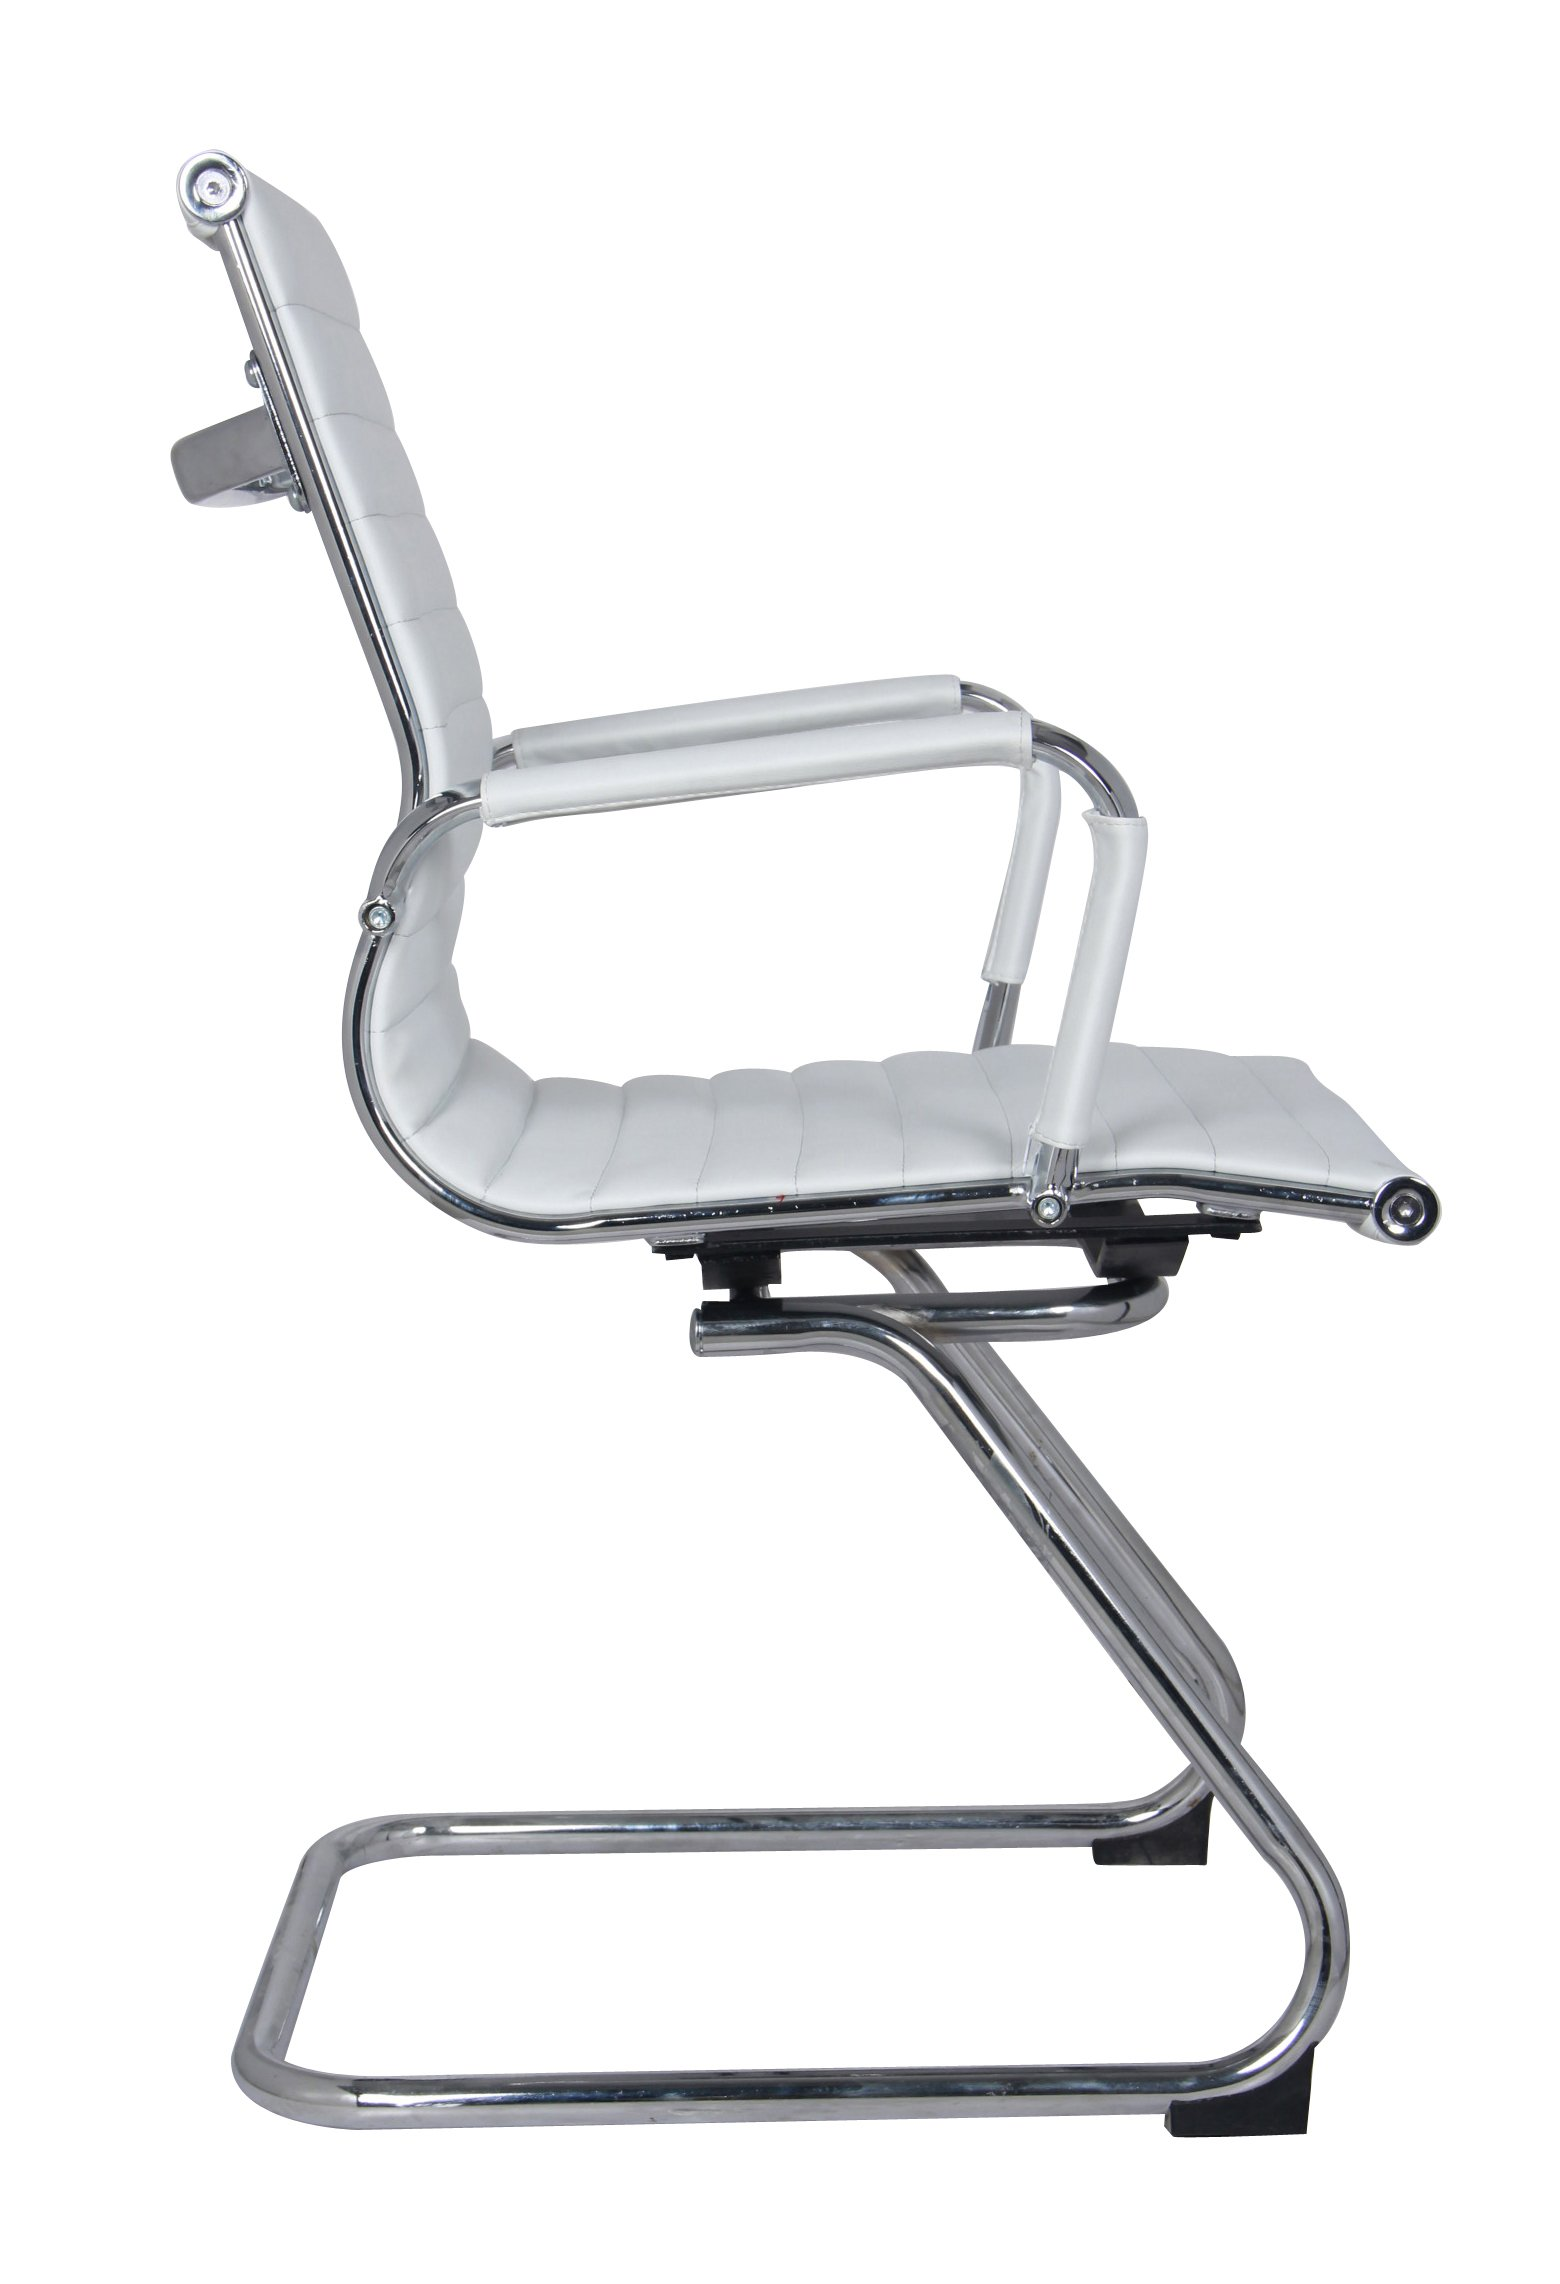 Classic Replica Visitors Chair in White PU Leather. Chrome arms with Protective arm Sleeves with Zip Available. Suitable for Office and Home   Set of 2 Chairs by US Office Elements (Image #3)